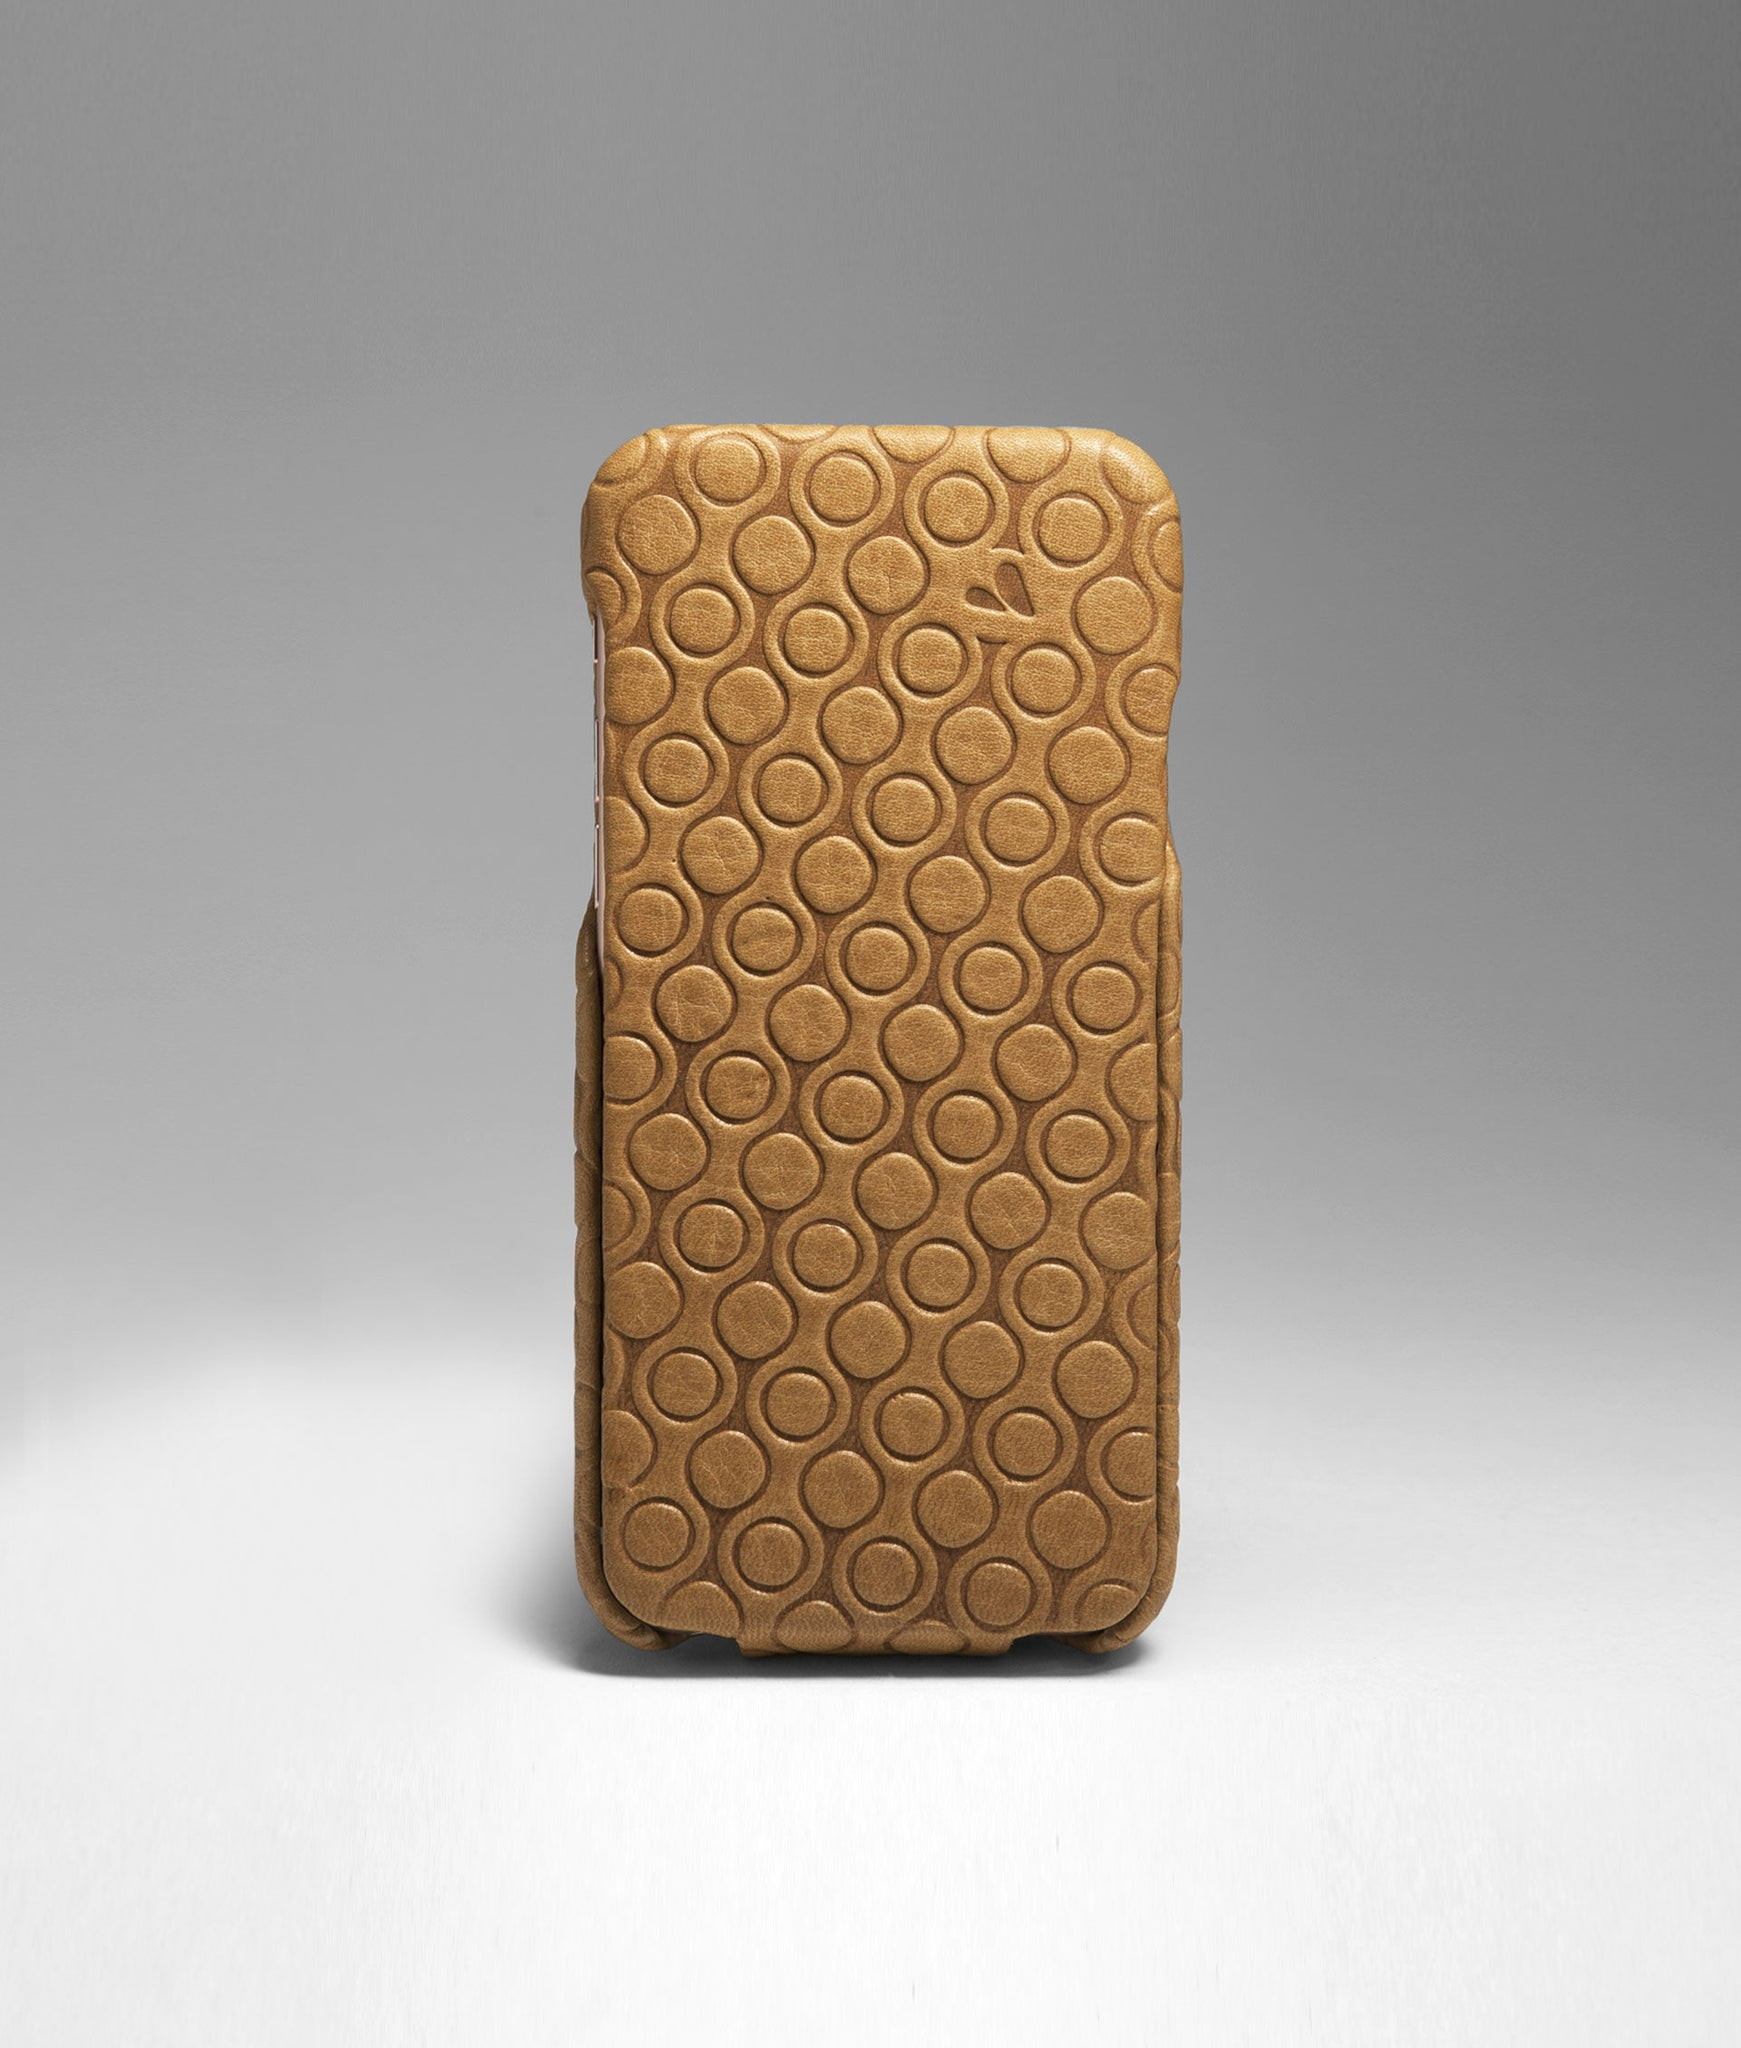 iPhone 6 / 6s - Embossed Top Leather Case